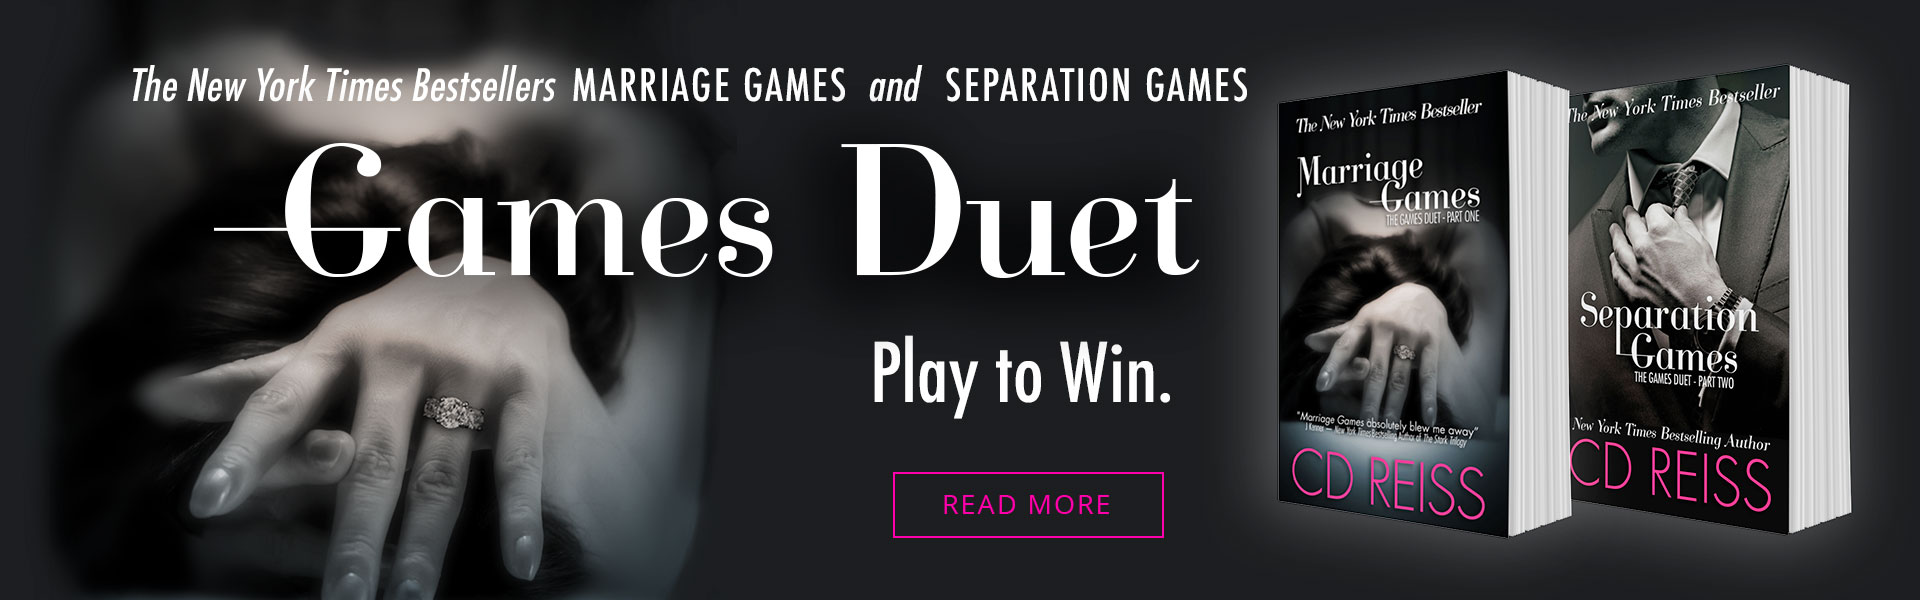 New York Times Bestselling Games Duet (featuring Marriage Games and Separation Games) by CD Reiss